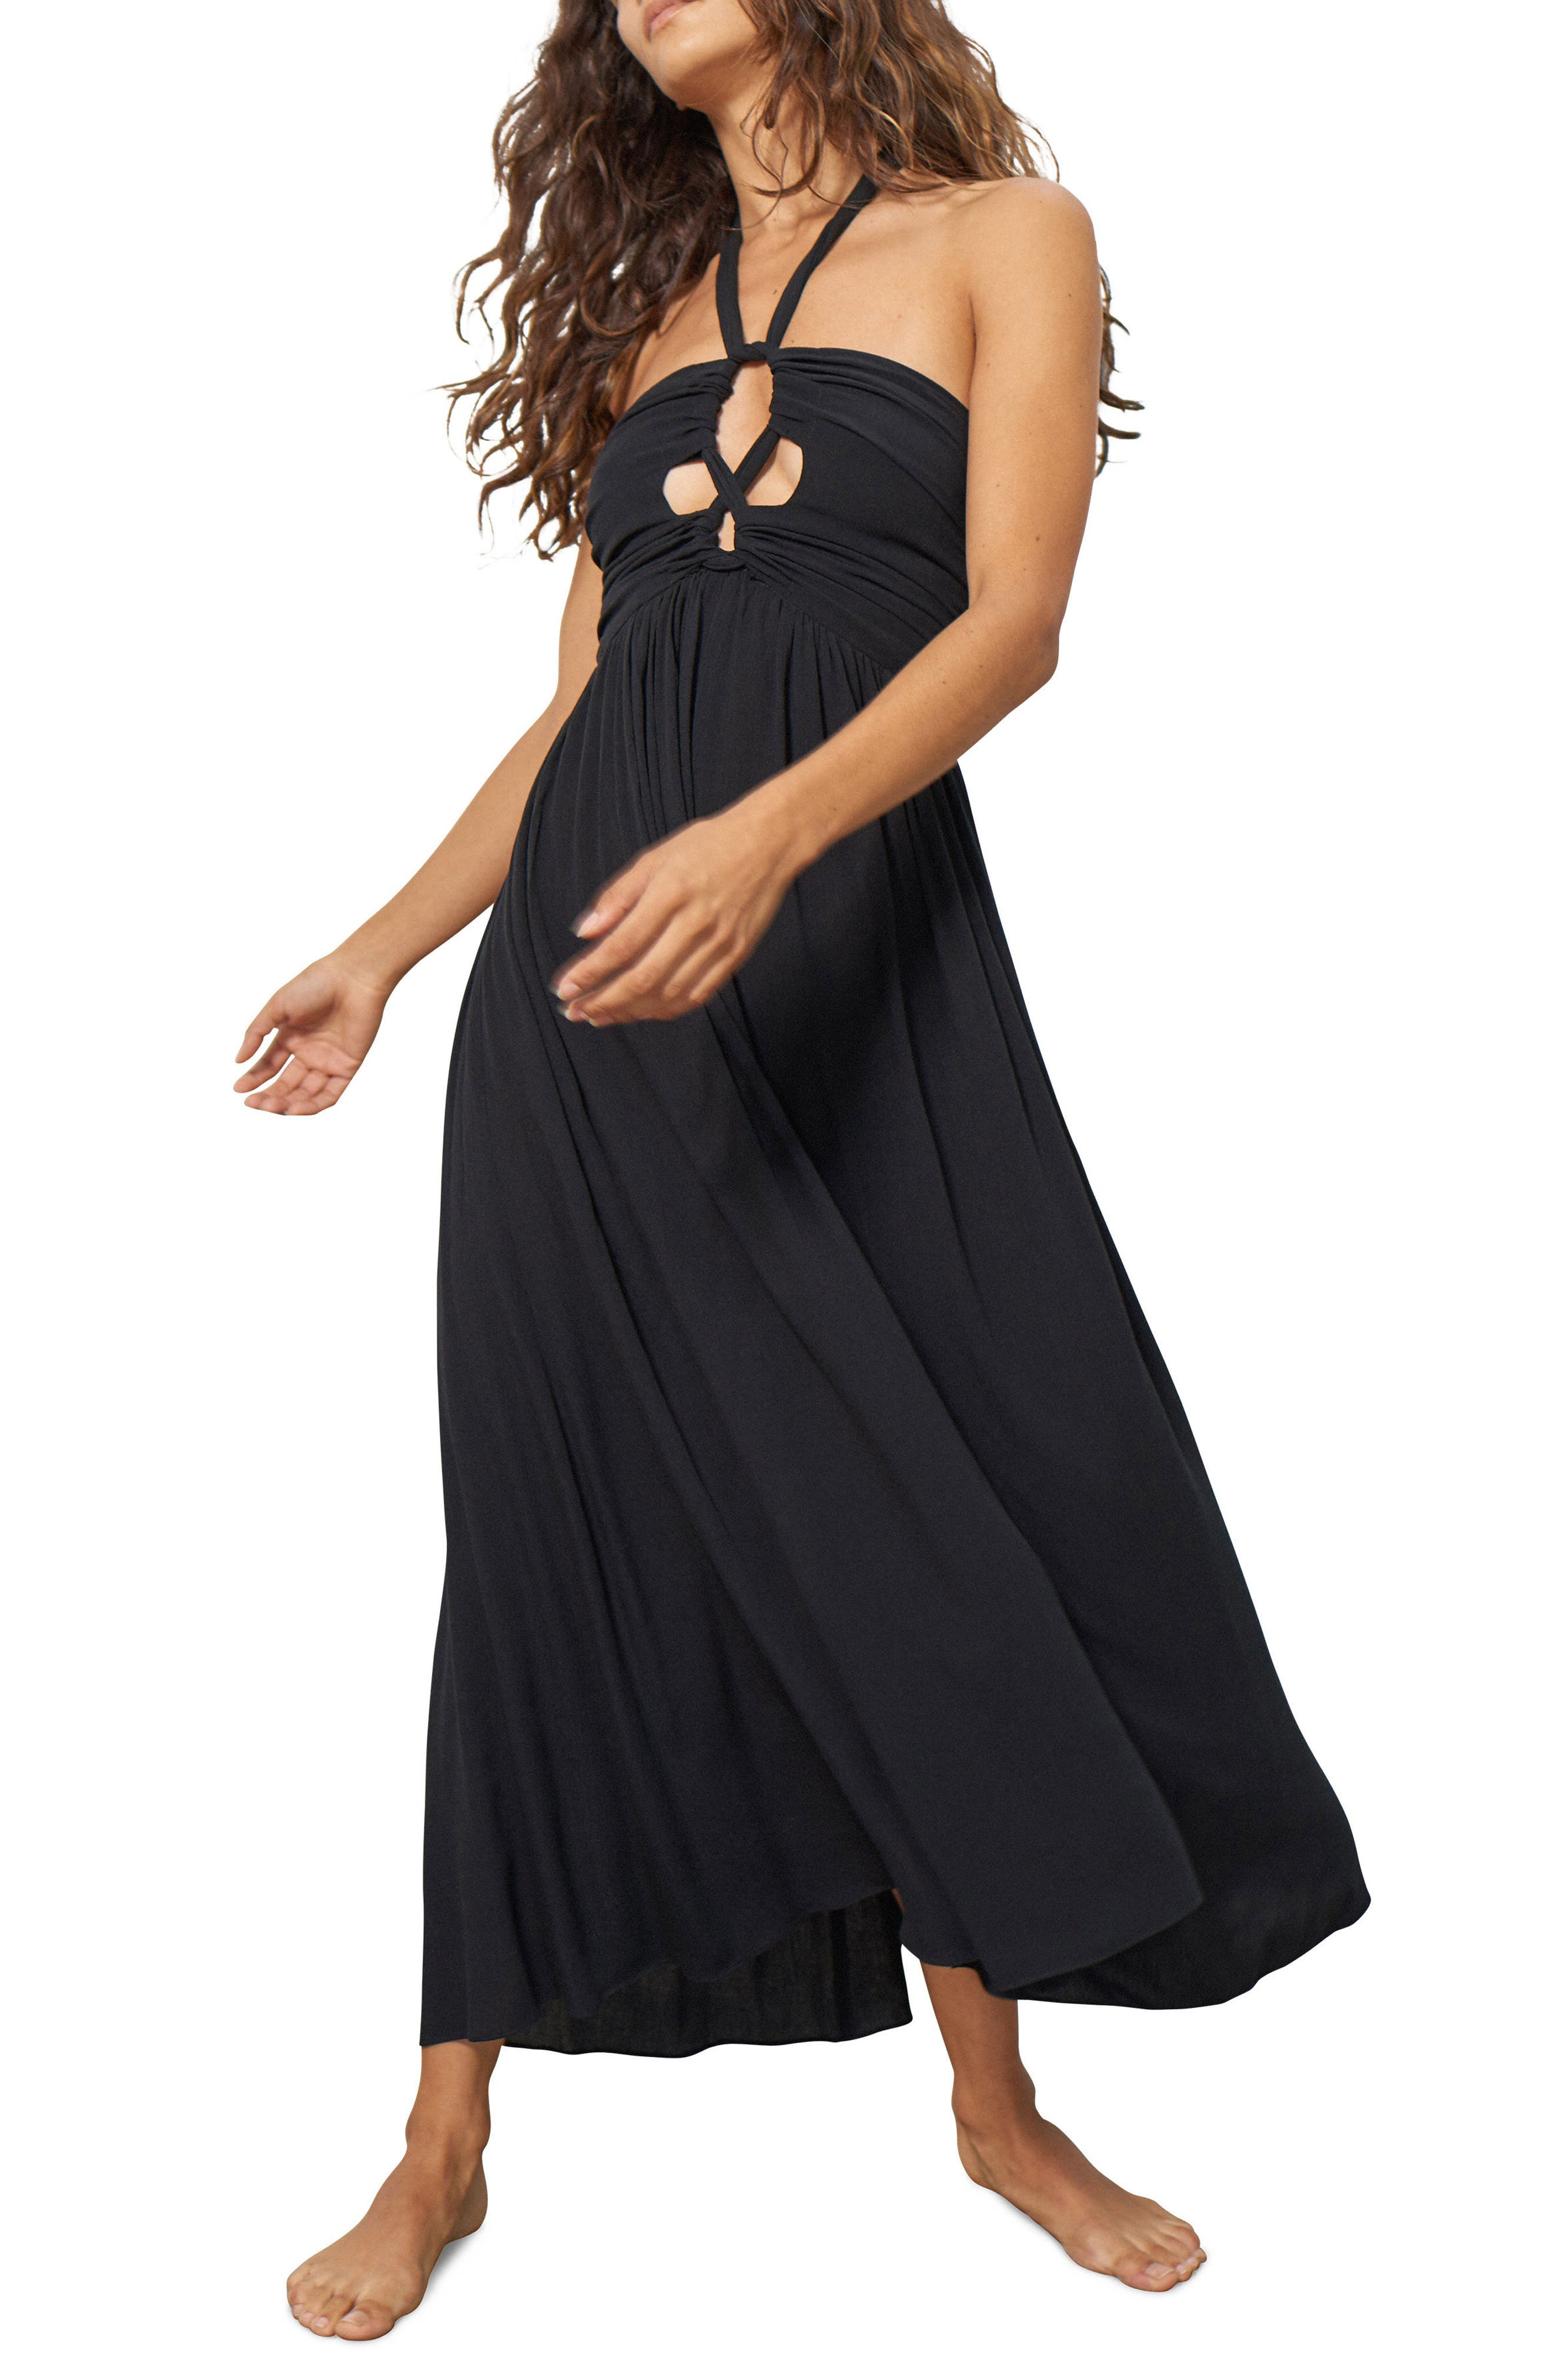 Annika Cover-Up Dress,                         Main,                         color, Black